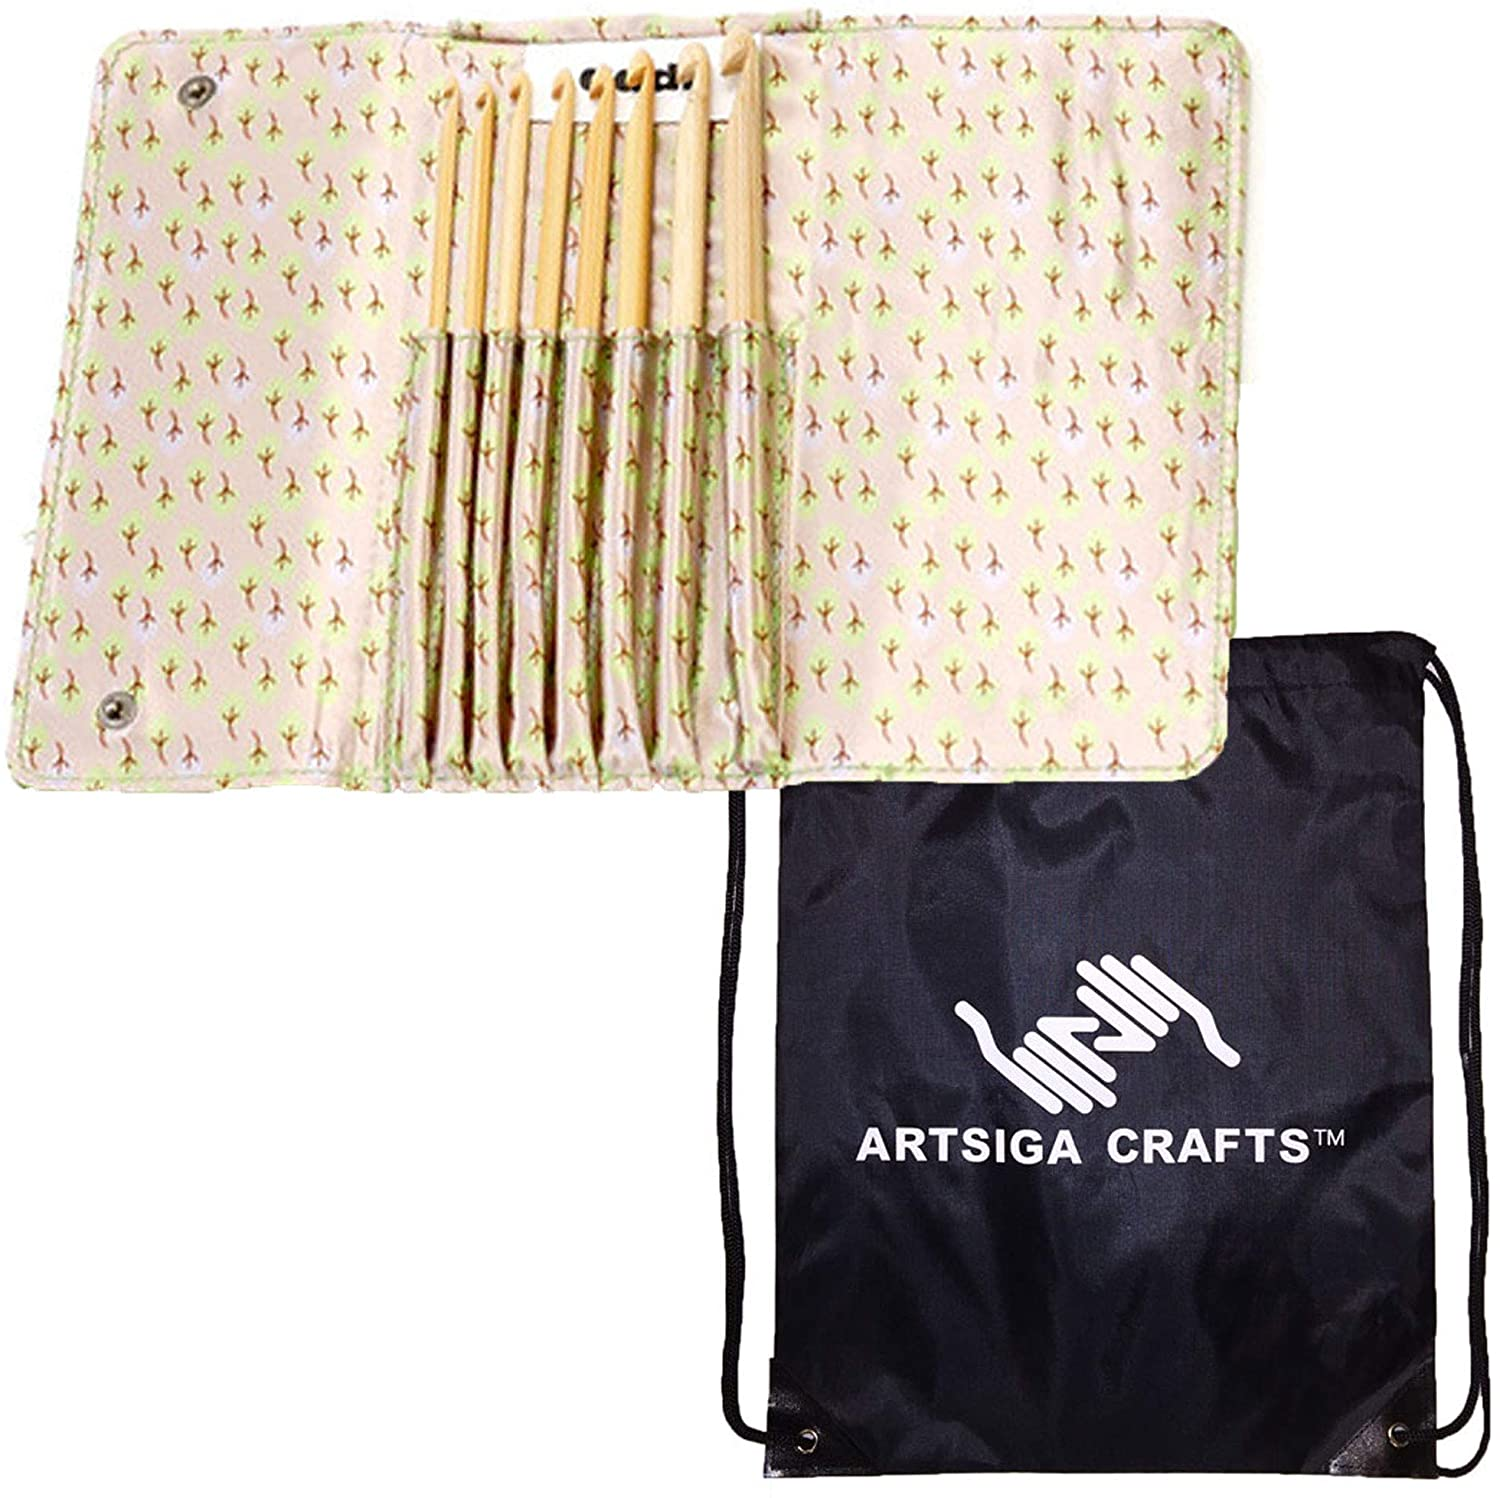 addi Knitting Needles Crochet Hook Click Bamboo Interchangeable System Bundle with 1 Artsiga Crafts Project Bag